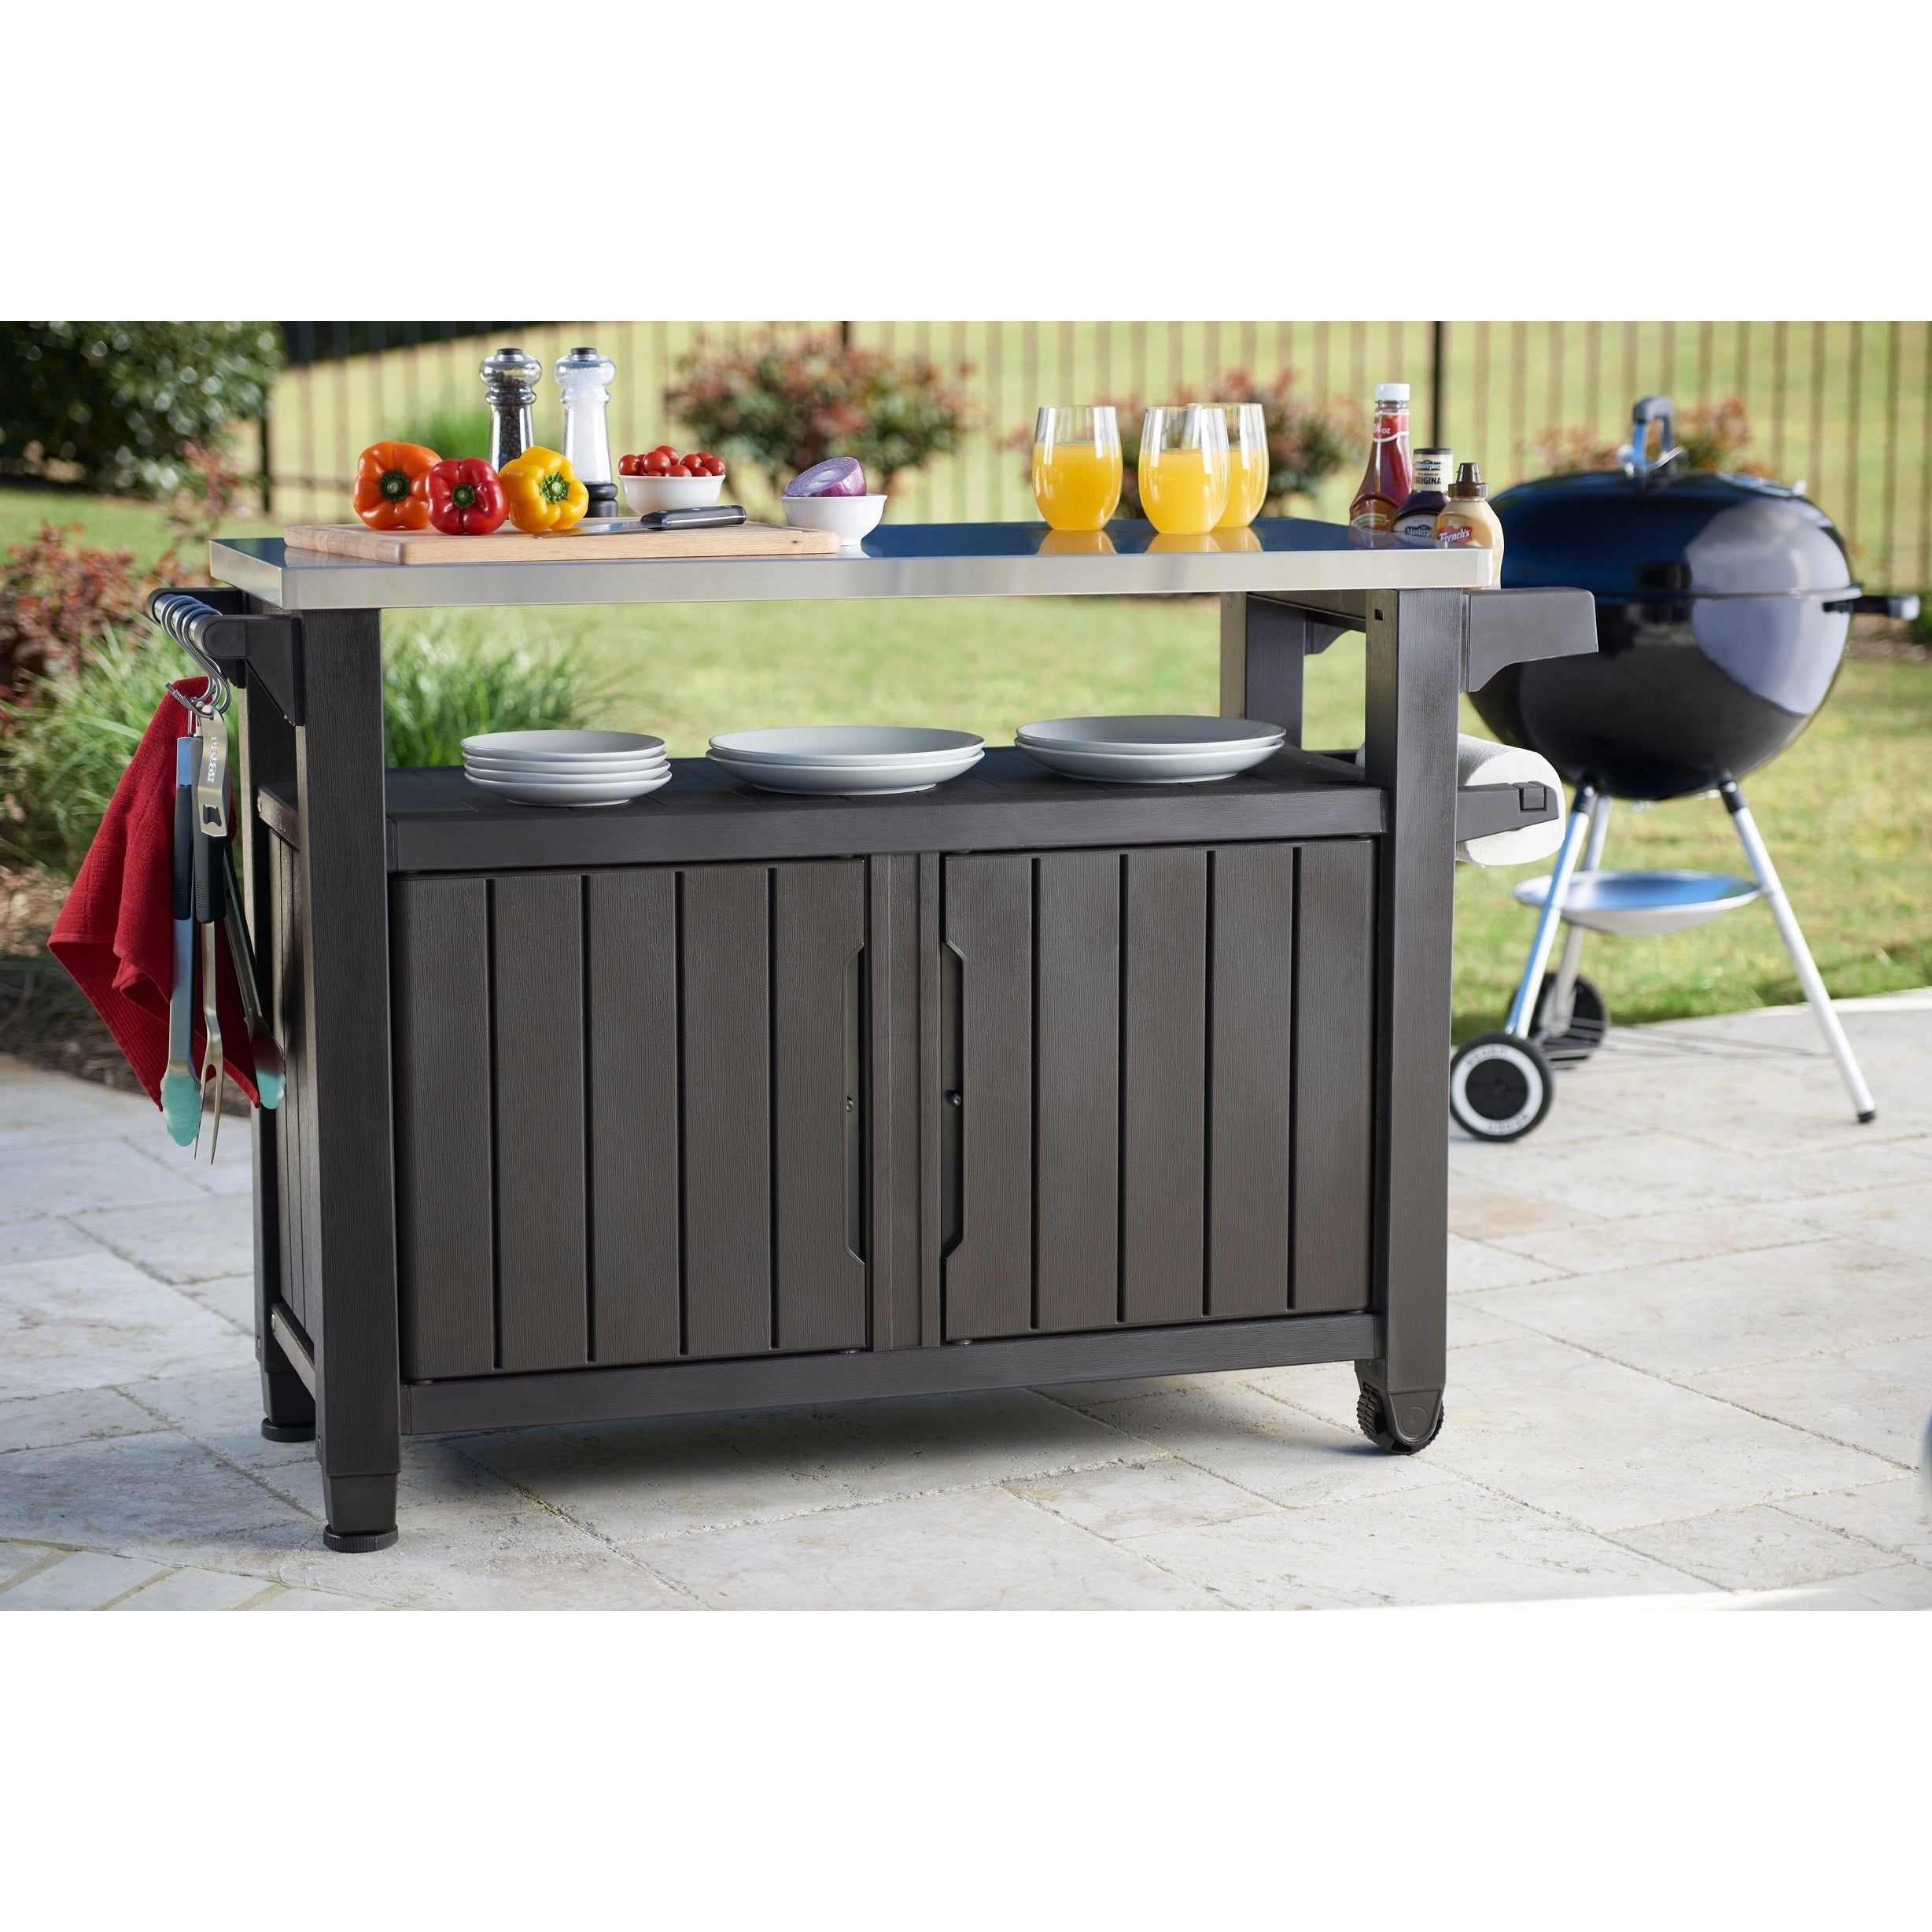 Shop Keter Unity XL Indoor Outdoor Serving Cart Prep Station with Storage - Free Shipping Today - Overstock.com - 17853968  sc 1 st  Overstock.com & Shop Keter Unity XL Indoor Outdoor Serving Cart Prep Station with ...